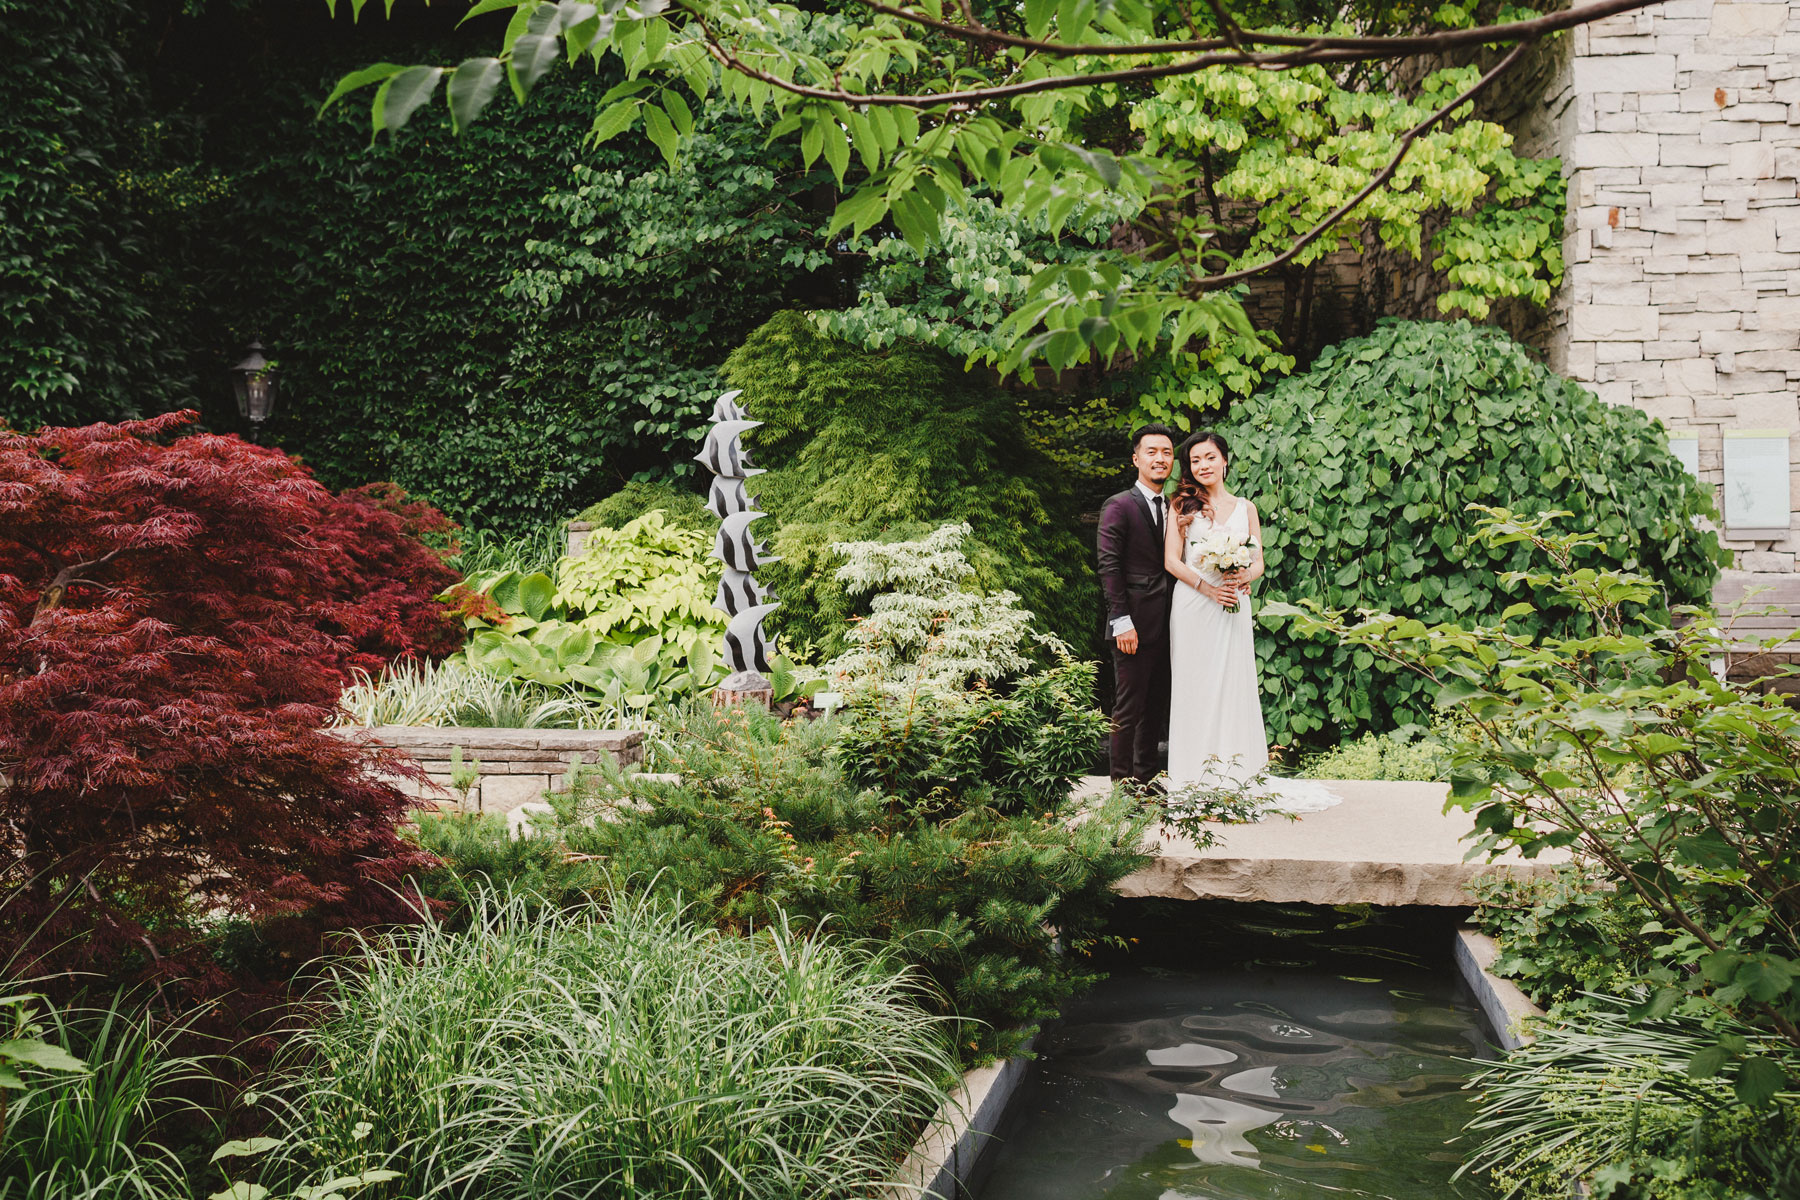 Wedding-Photographers-Botanical-Garden-Toronto